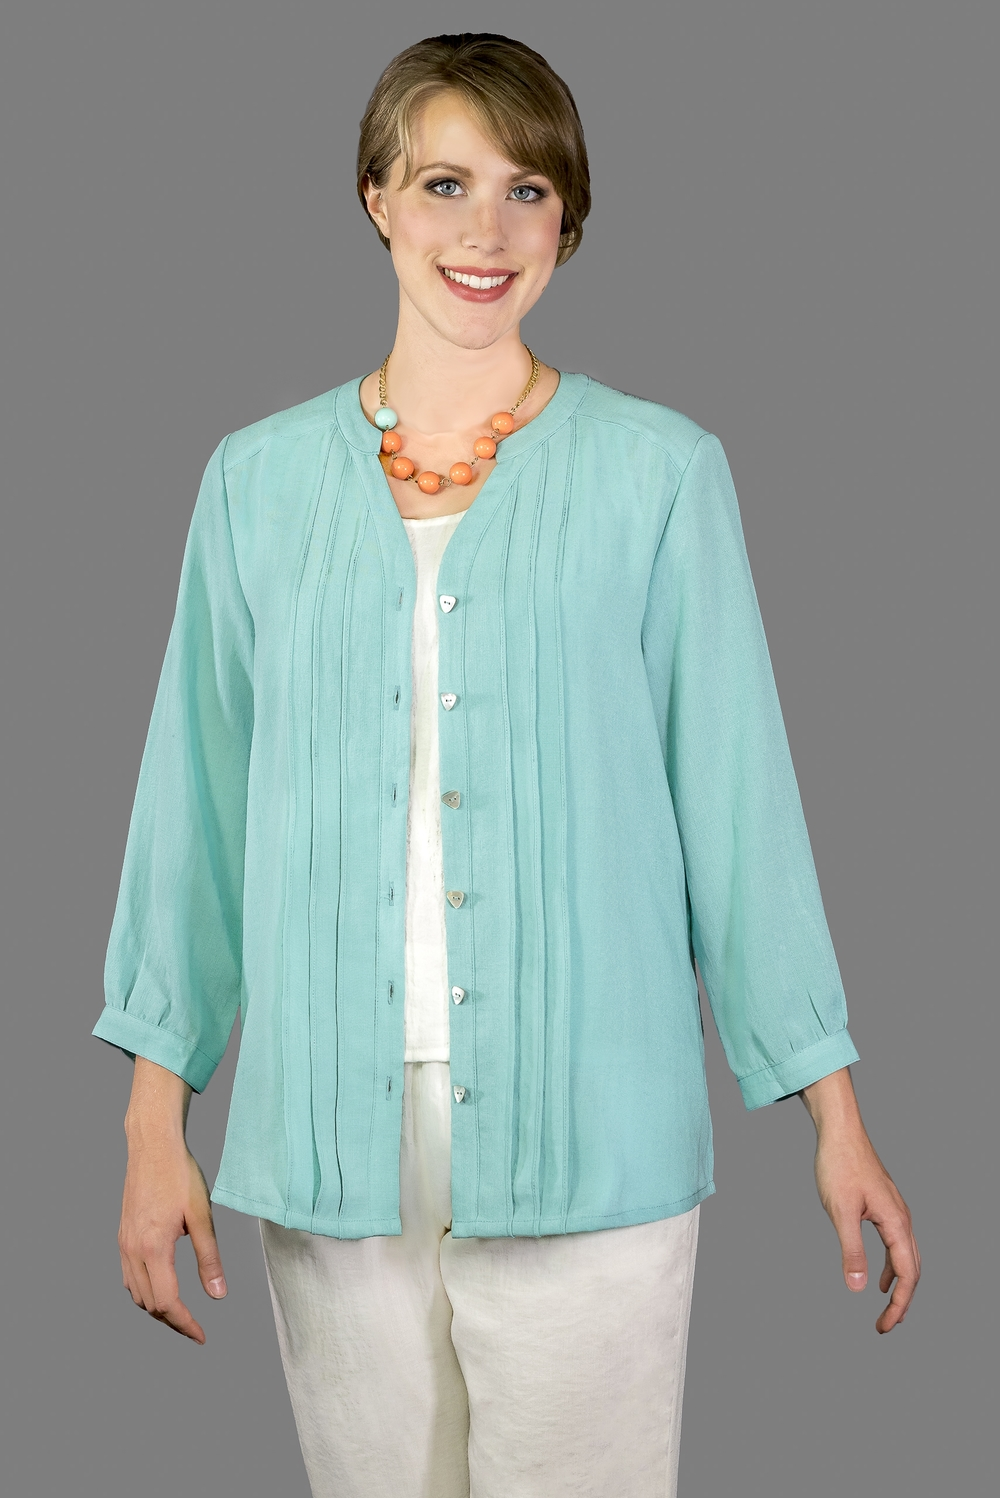 AA173 - Layered Pleats Top    CL3983 - Spa